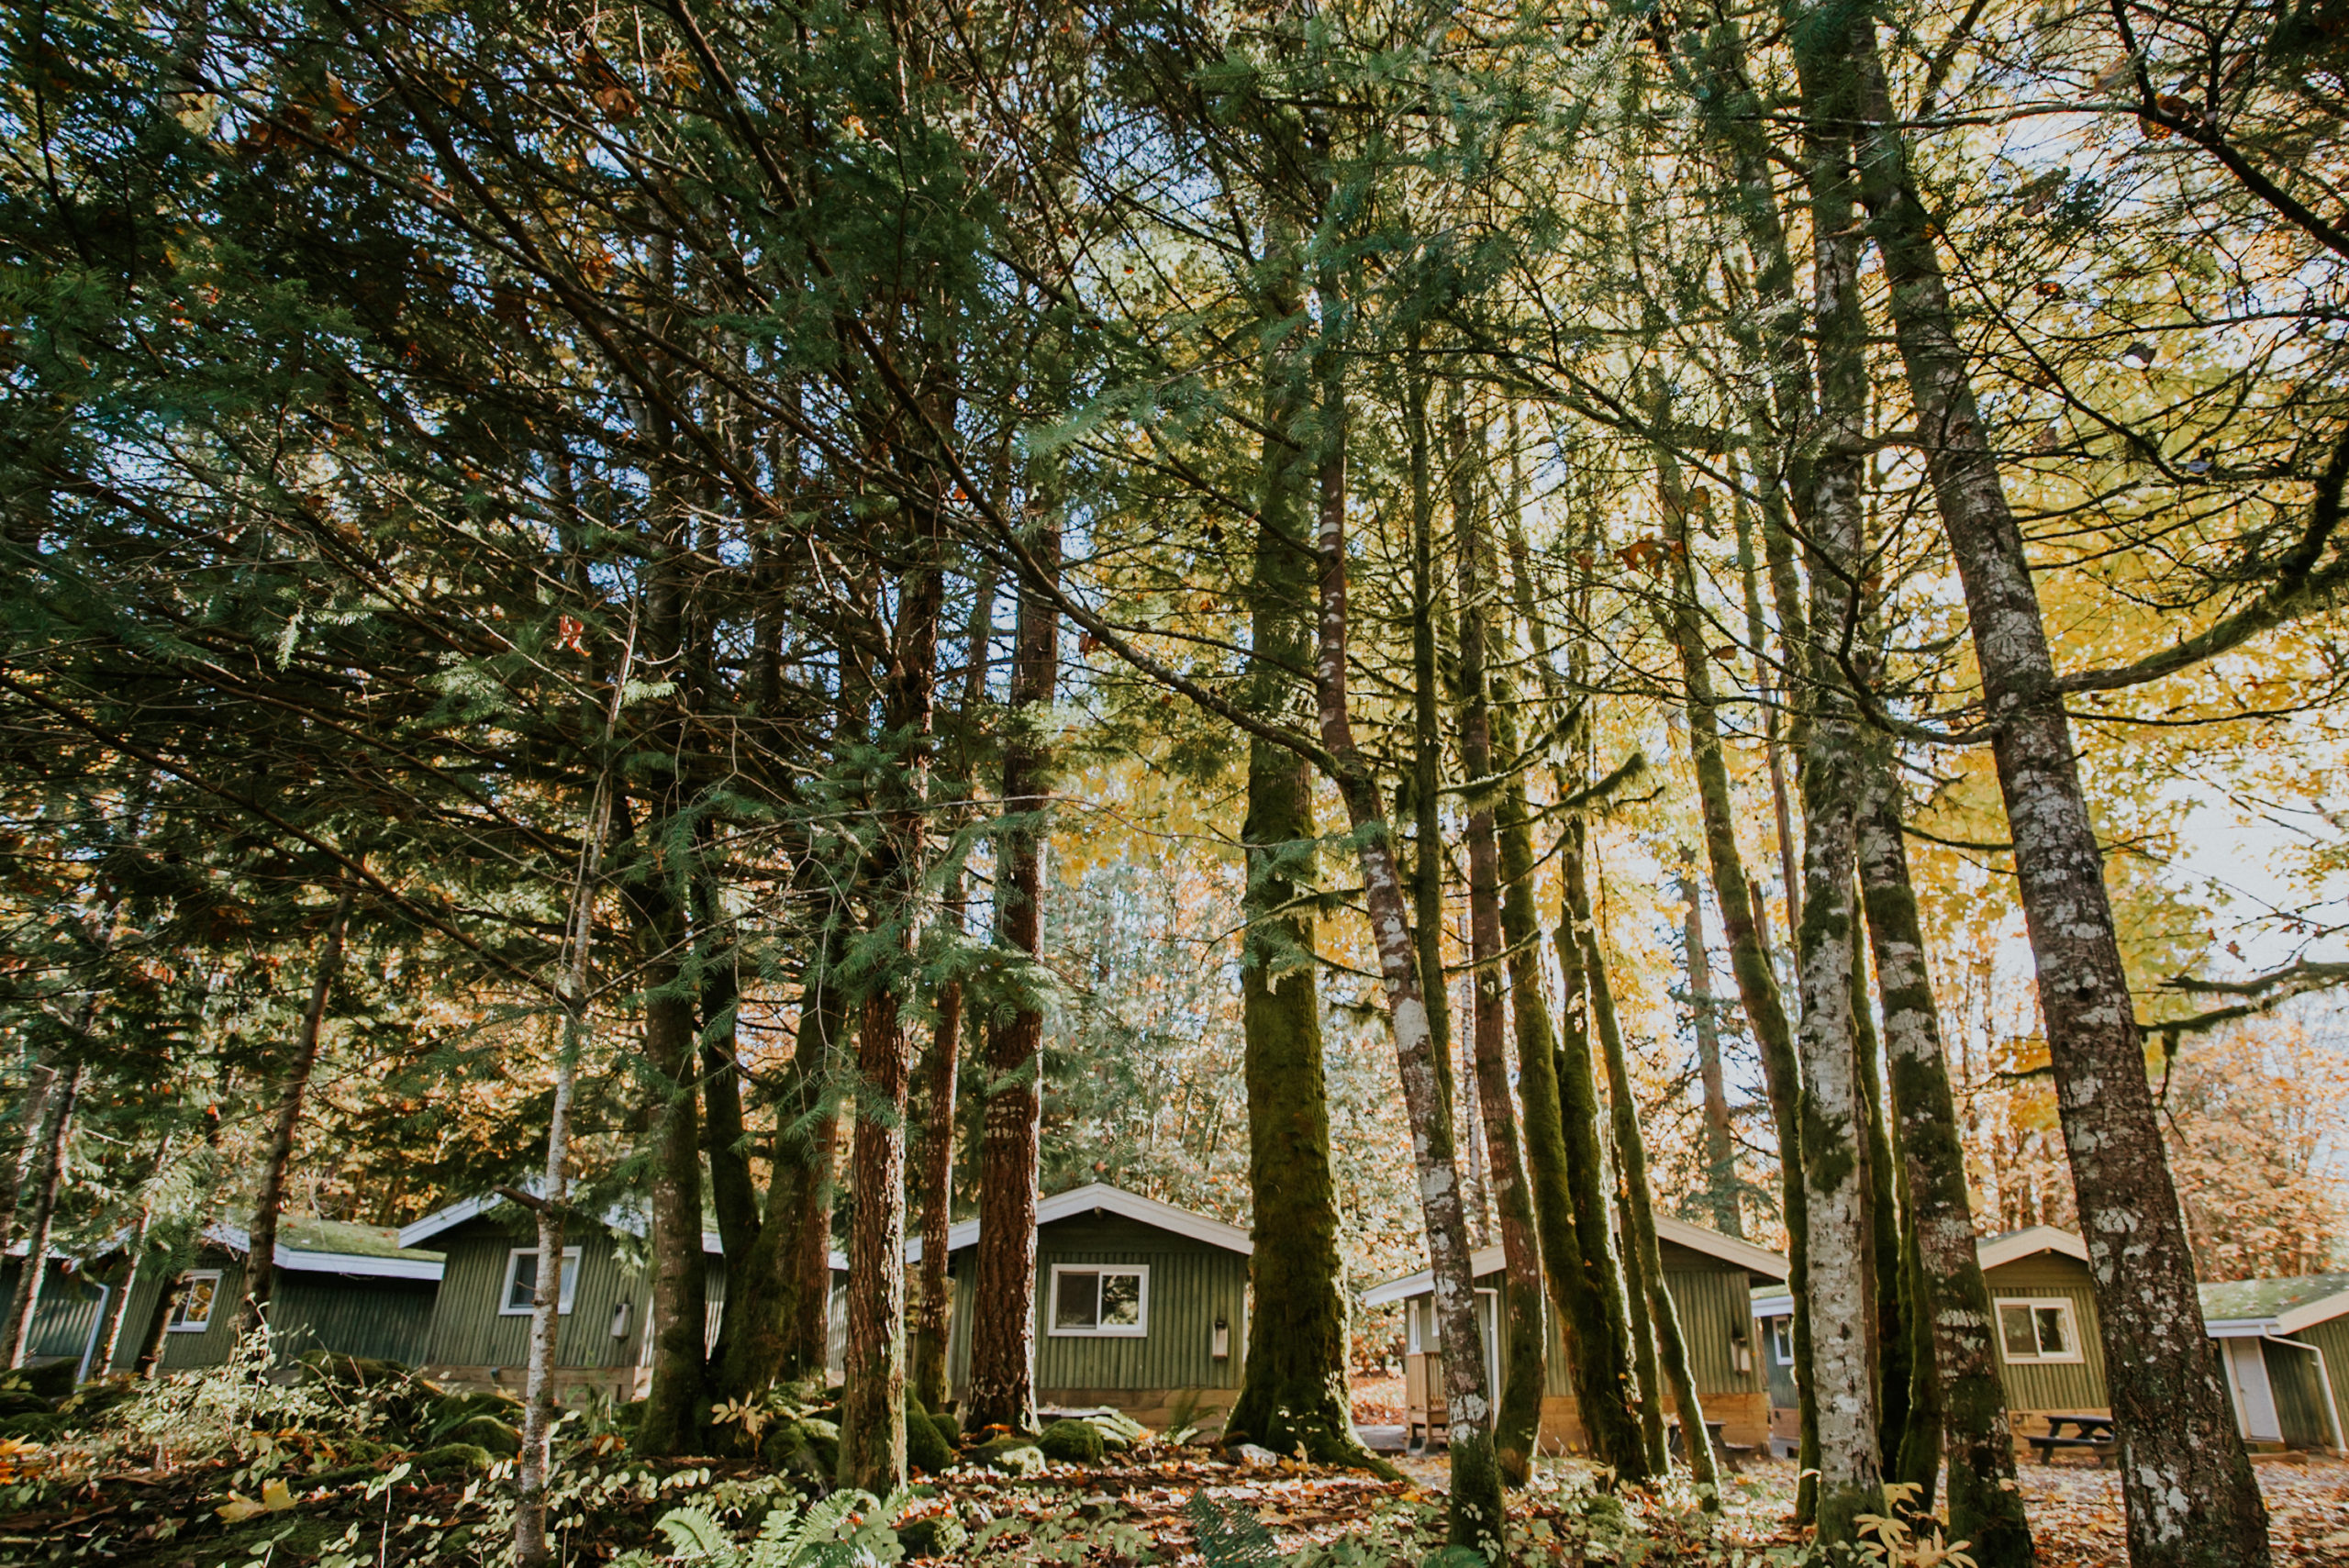 cabins, forest